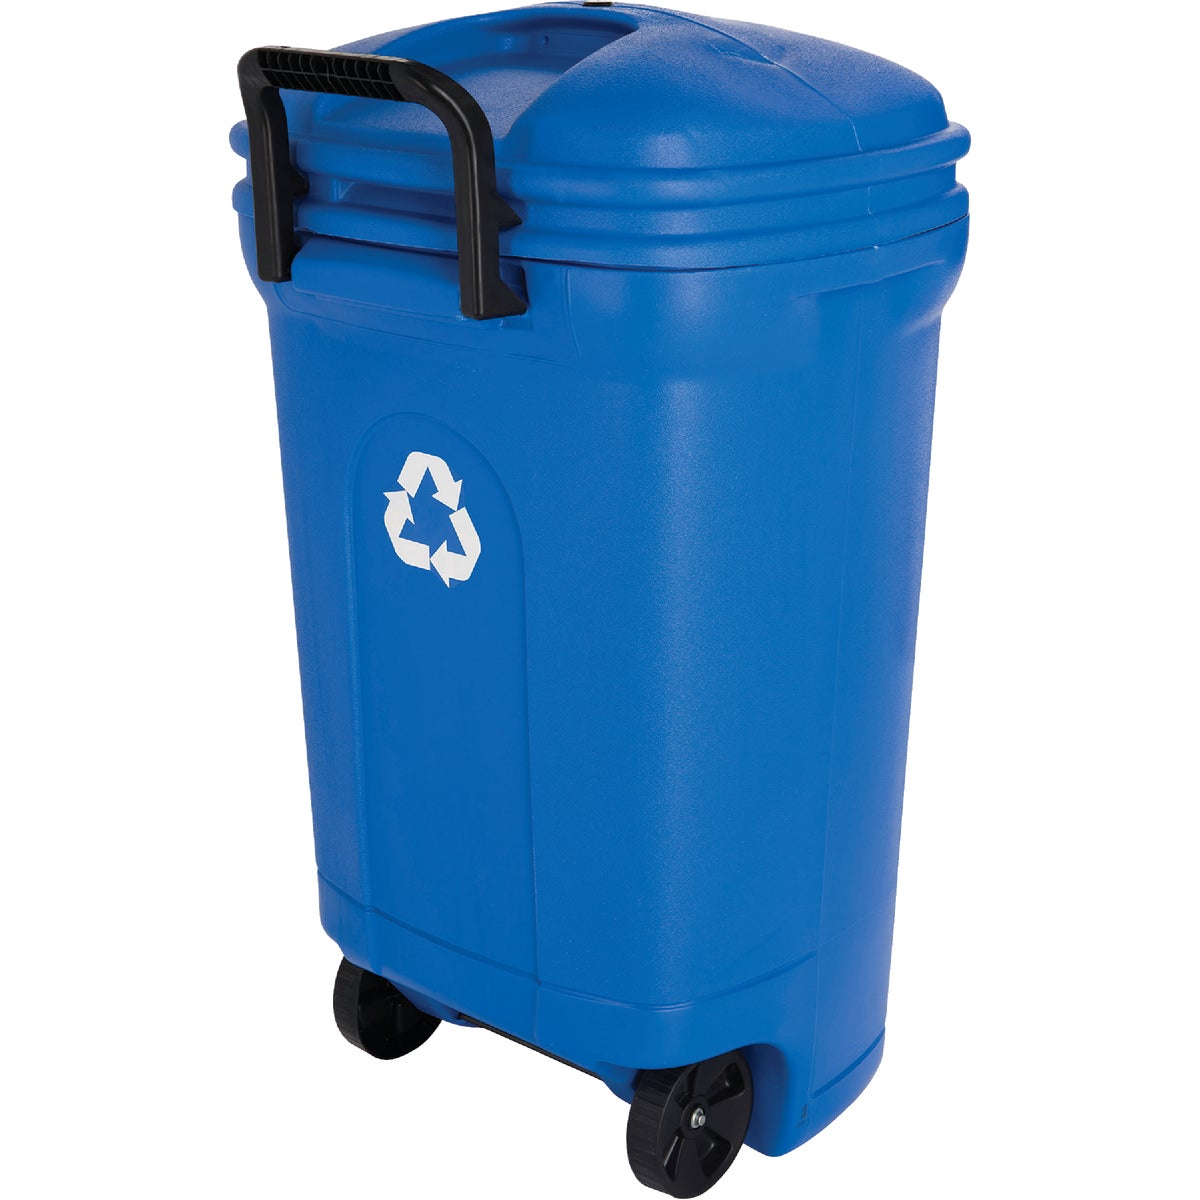 34GAL RECYCLE TRASH CAN - TB0056/6 by United Solutions